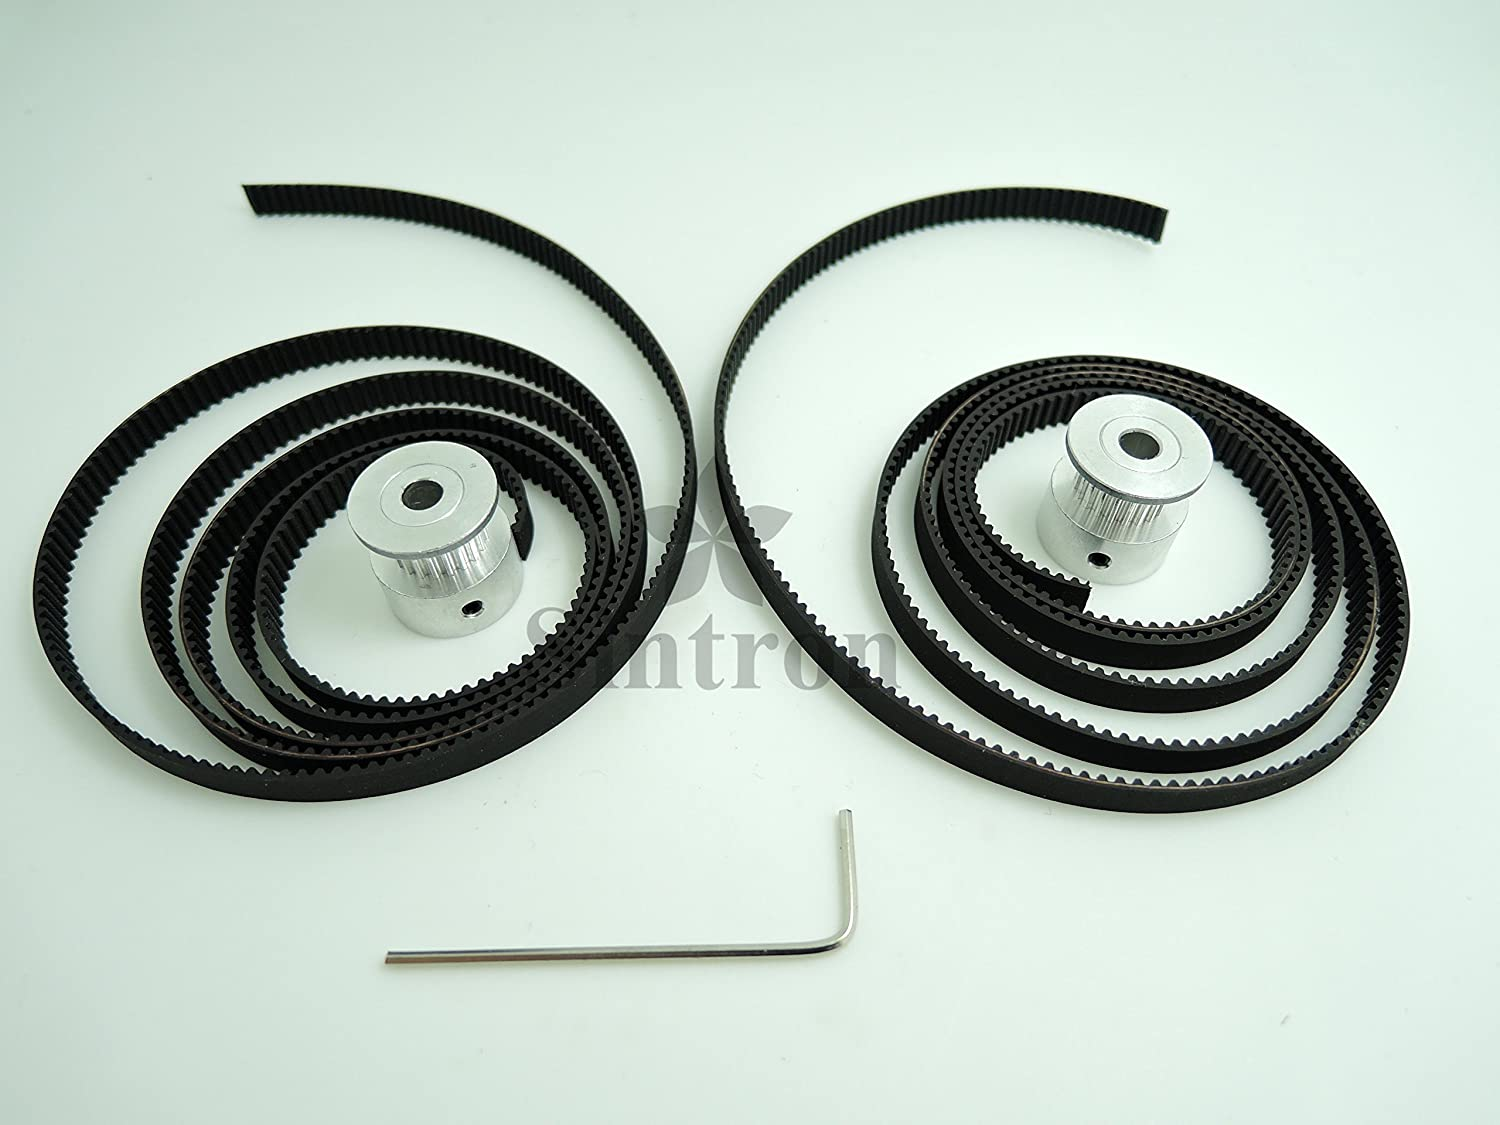 Sintron Electronics Timing Belt Pulleys